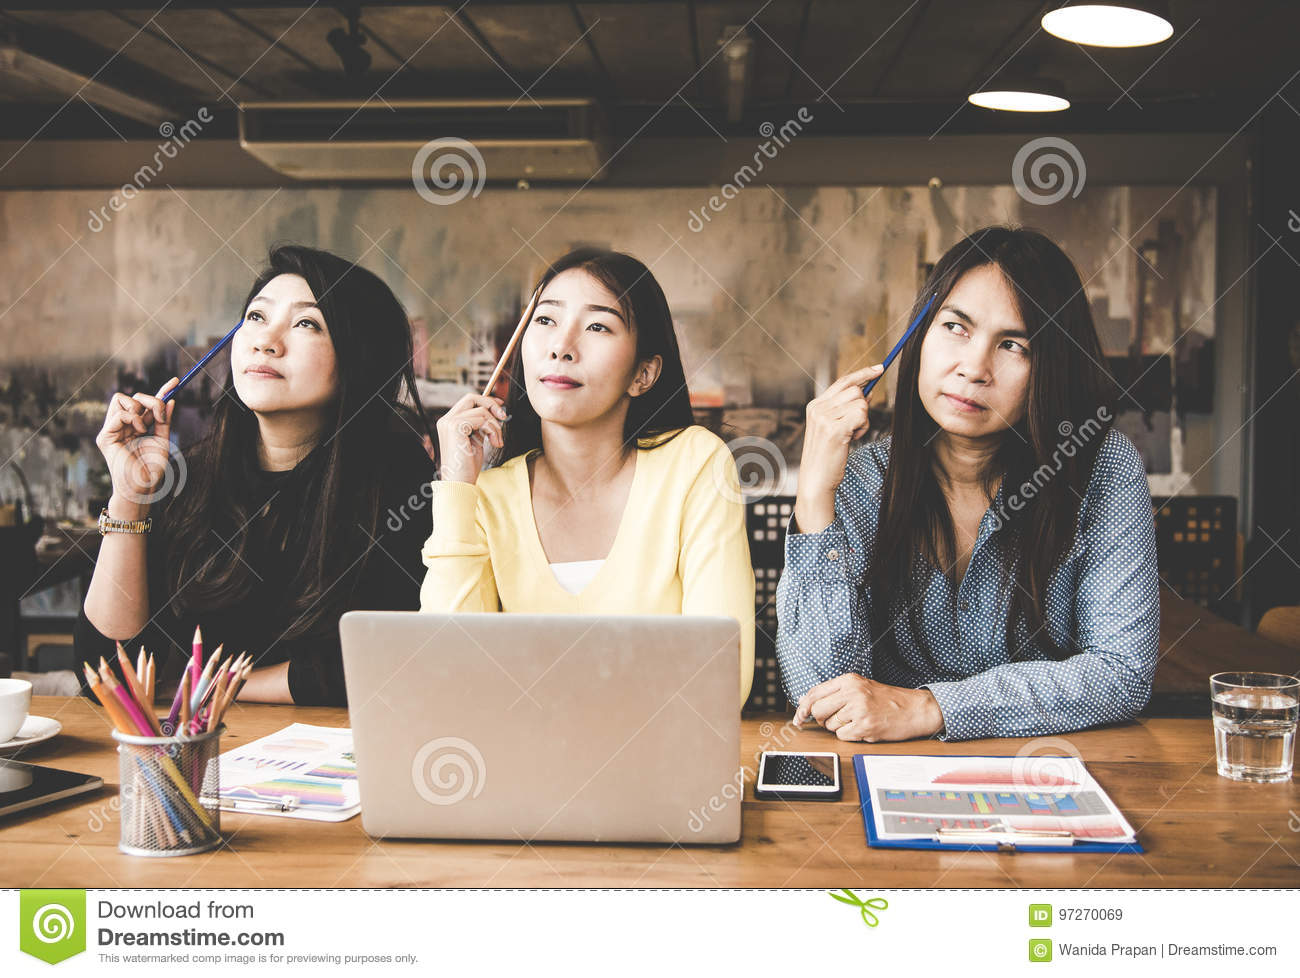 Group Business Asia Woman Looking And Thinking Something Ideas In Workspace Casual Outfit